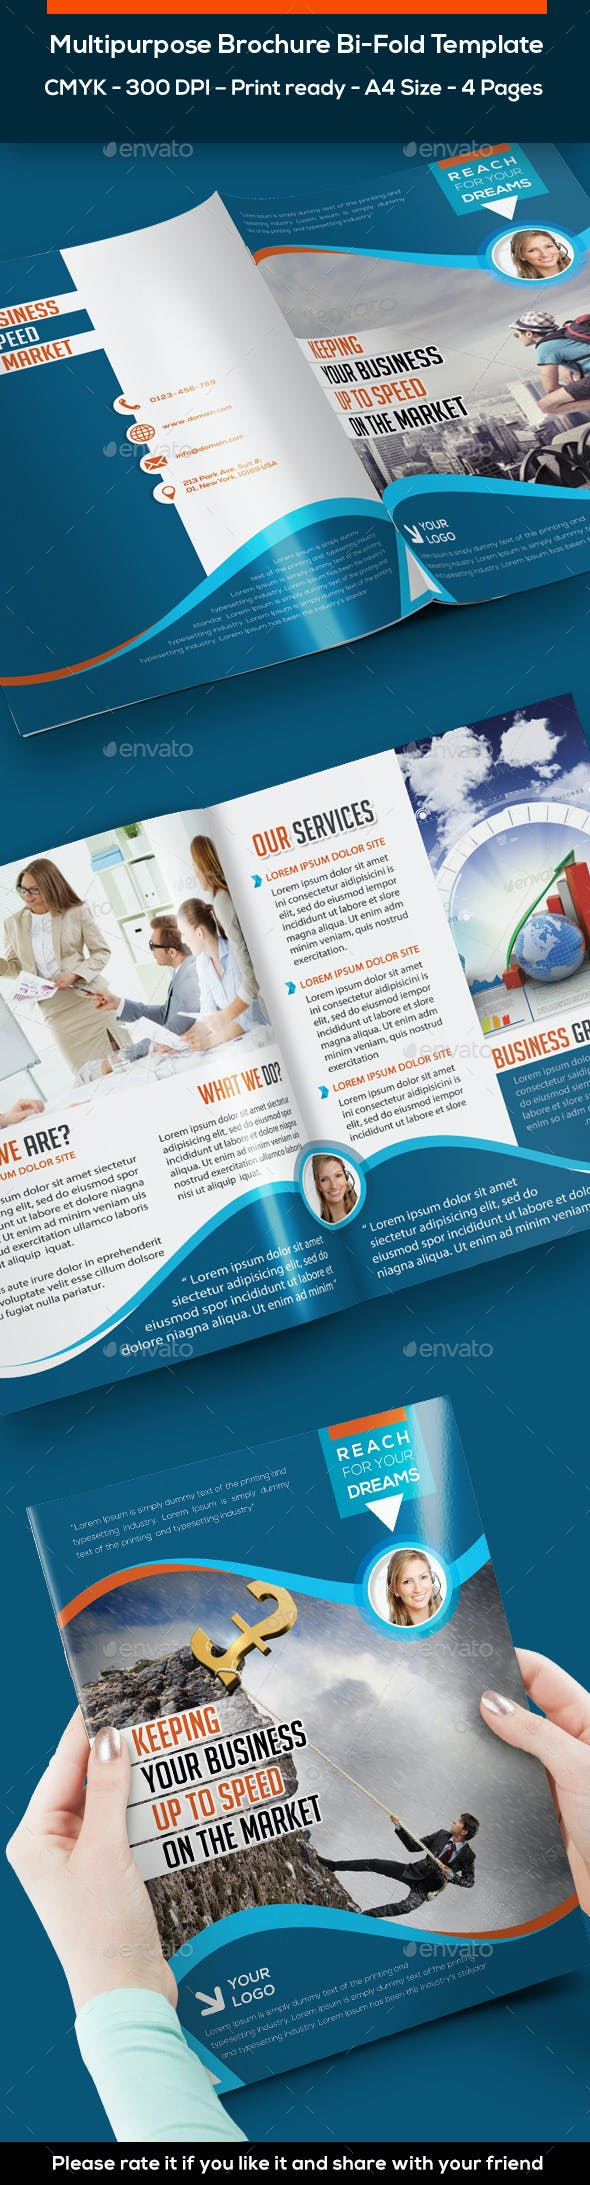 bi fold brochure template 4 pages by arabisq graphicriver